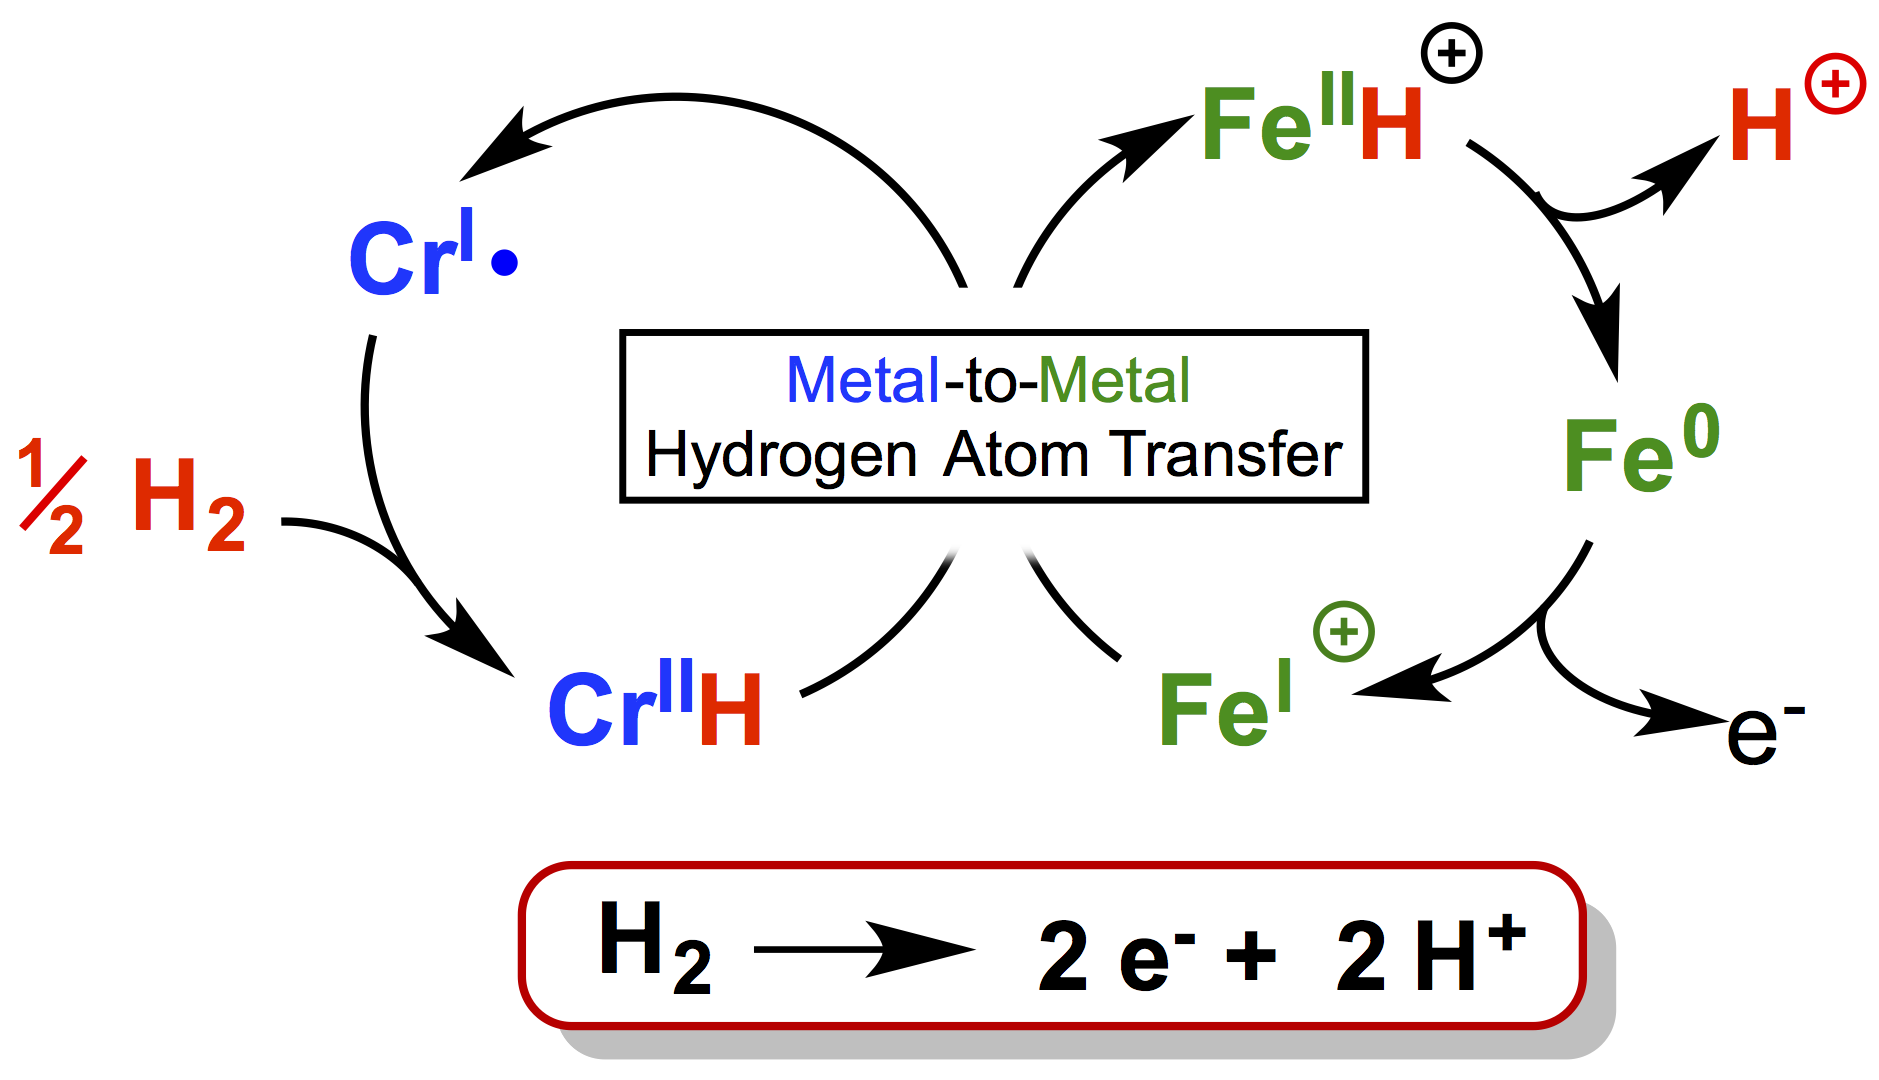 Illustration showing metal-to-metal Hydrogren atom transfer